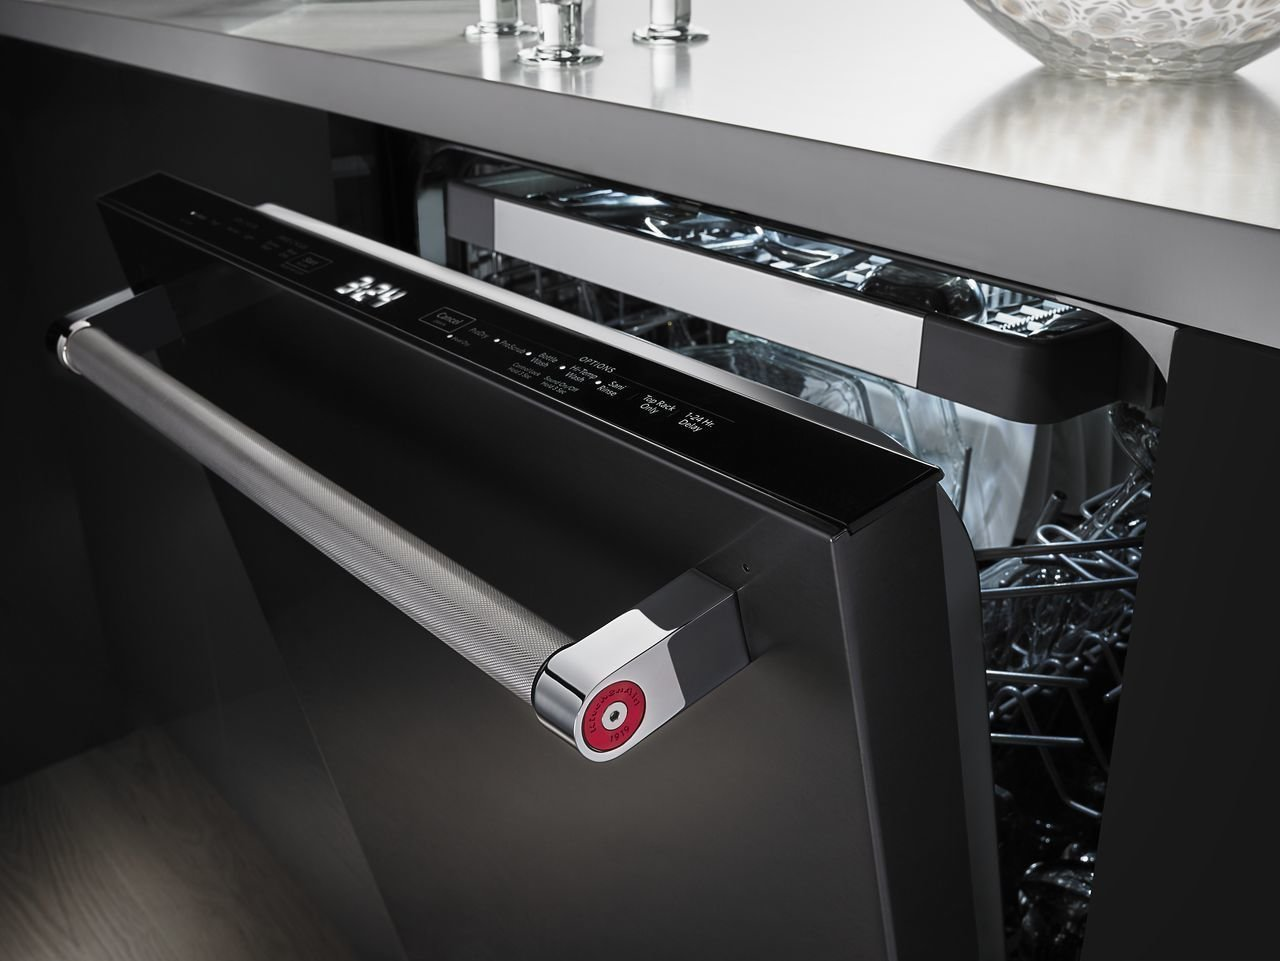 Kitchen Aid Dishwasher Black With Stainless